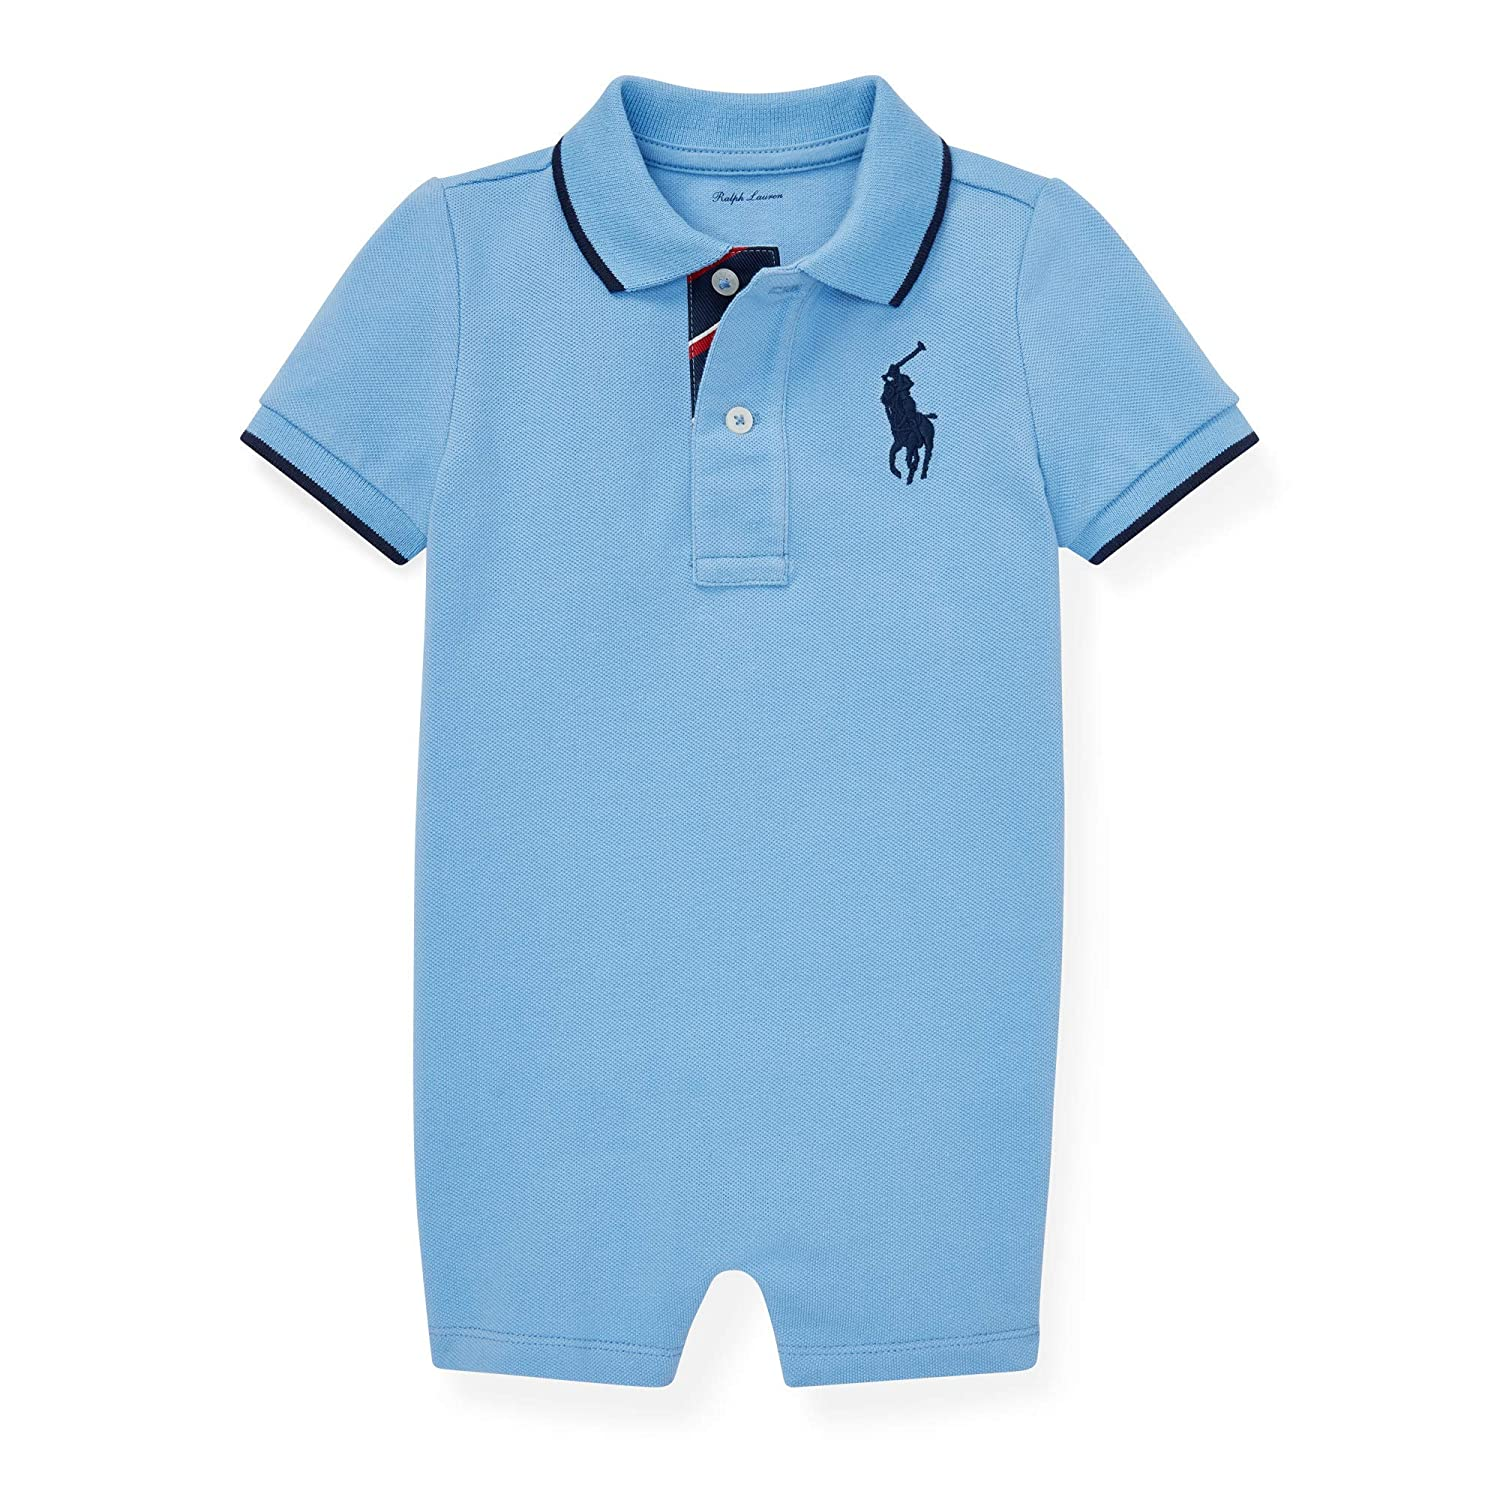 Ralph Lauren Baby Boys Shortalls Bodysuit Big Pony Mesh Pique Cotton Playwear Onesie